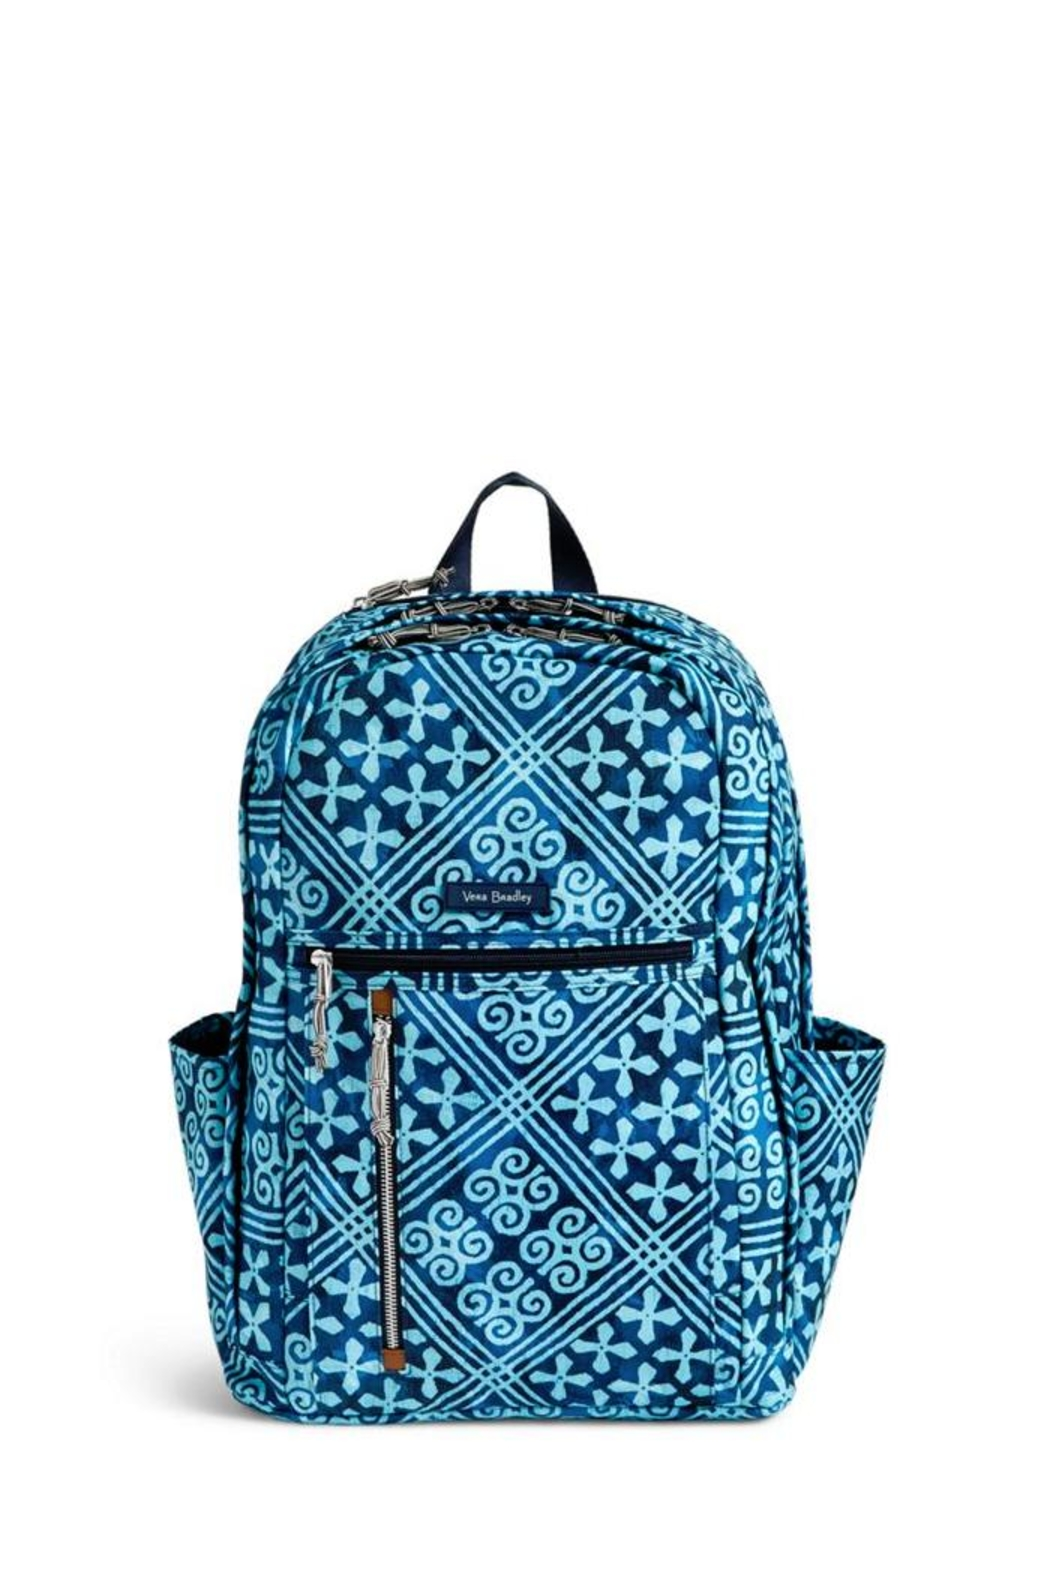 e8247630de2a Vera Bradley Grand Backpack Blue from Omaha by Material Girl ...